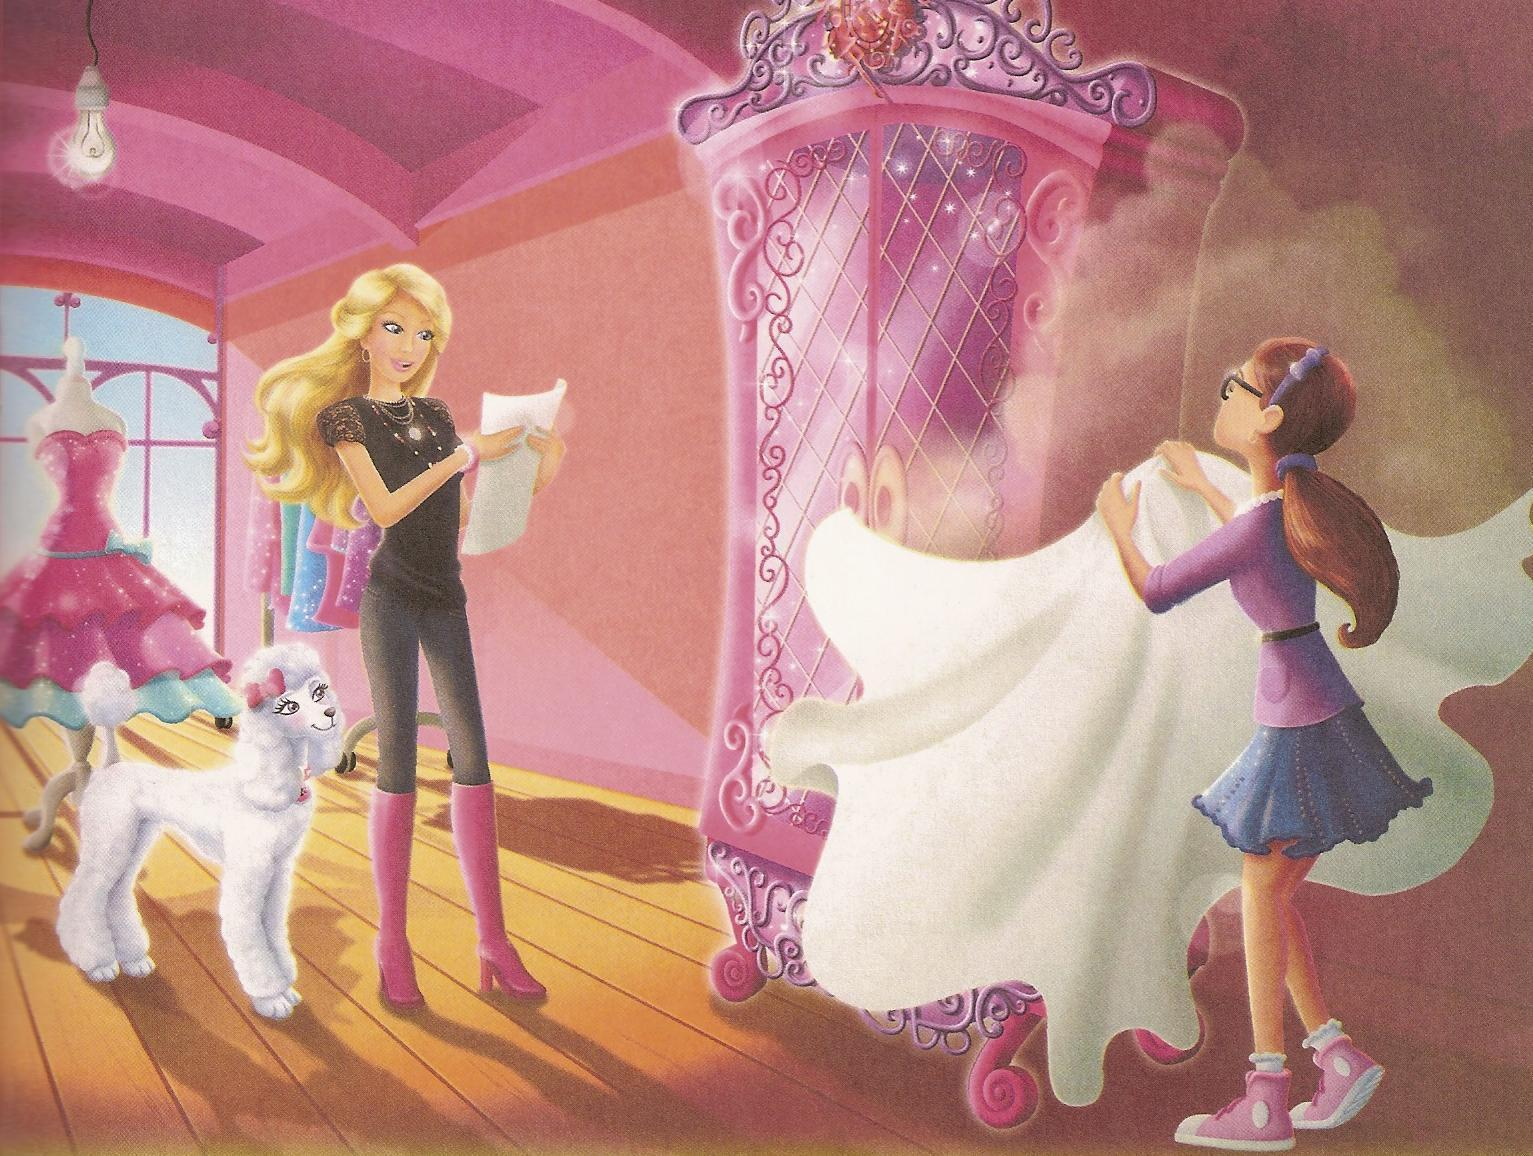 Barbie A Fashion Fairytale Full Movie In English Barbie a Fashion Fairy Tale